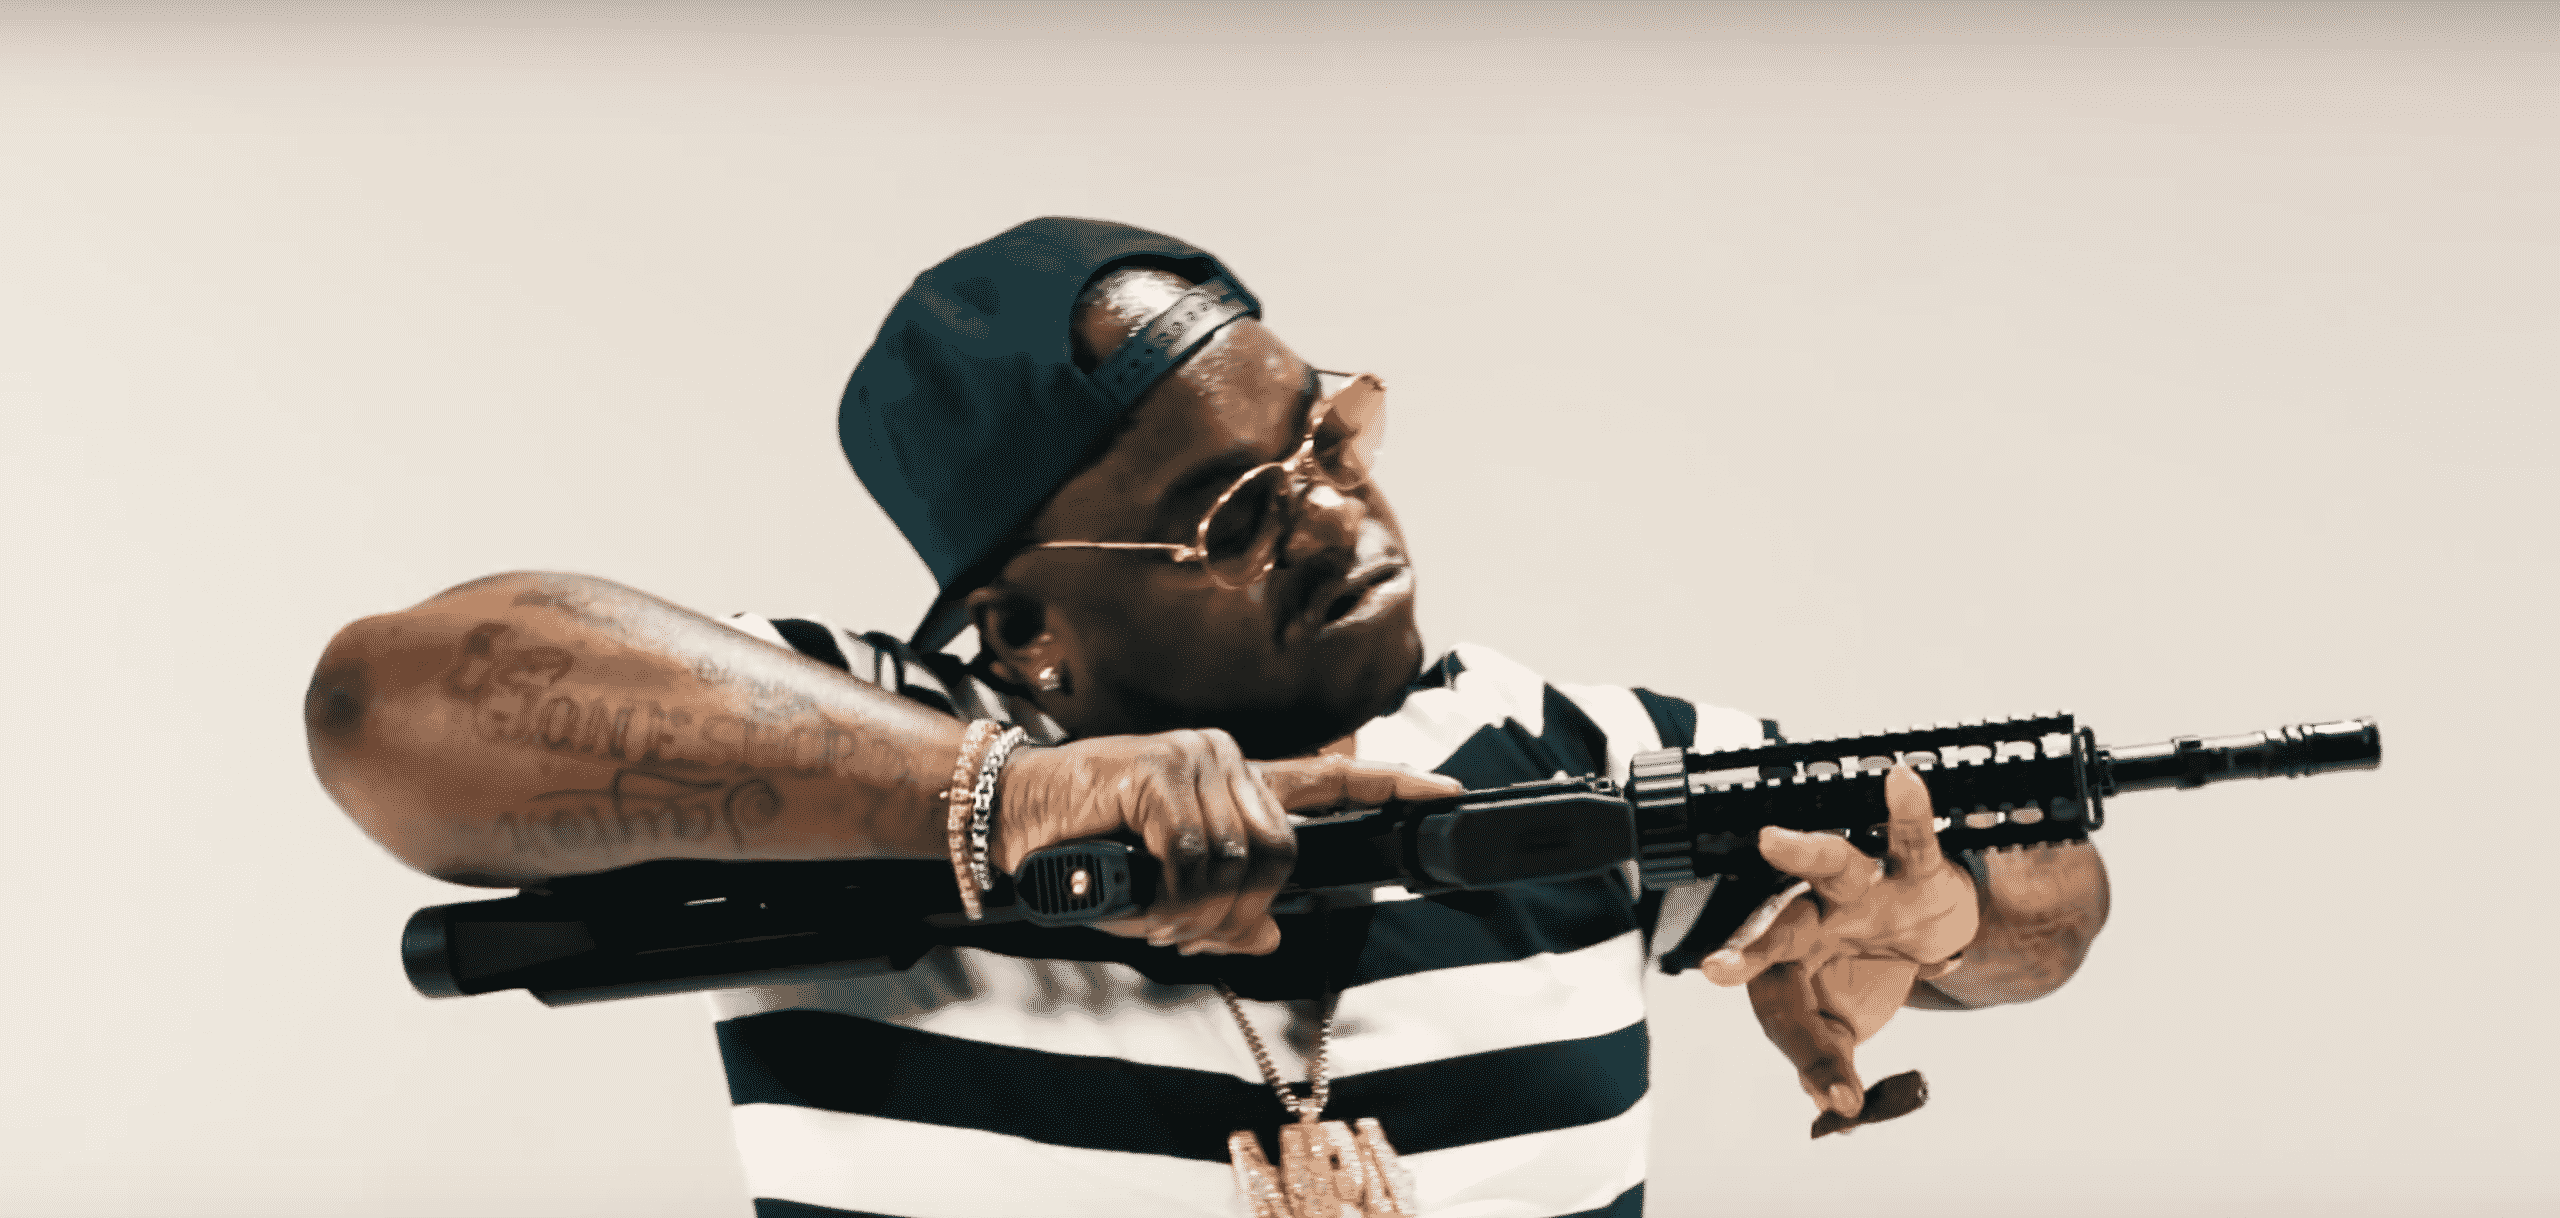 image peewee longway clip nun else to talk about